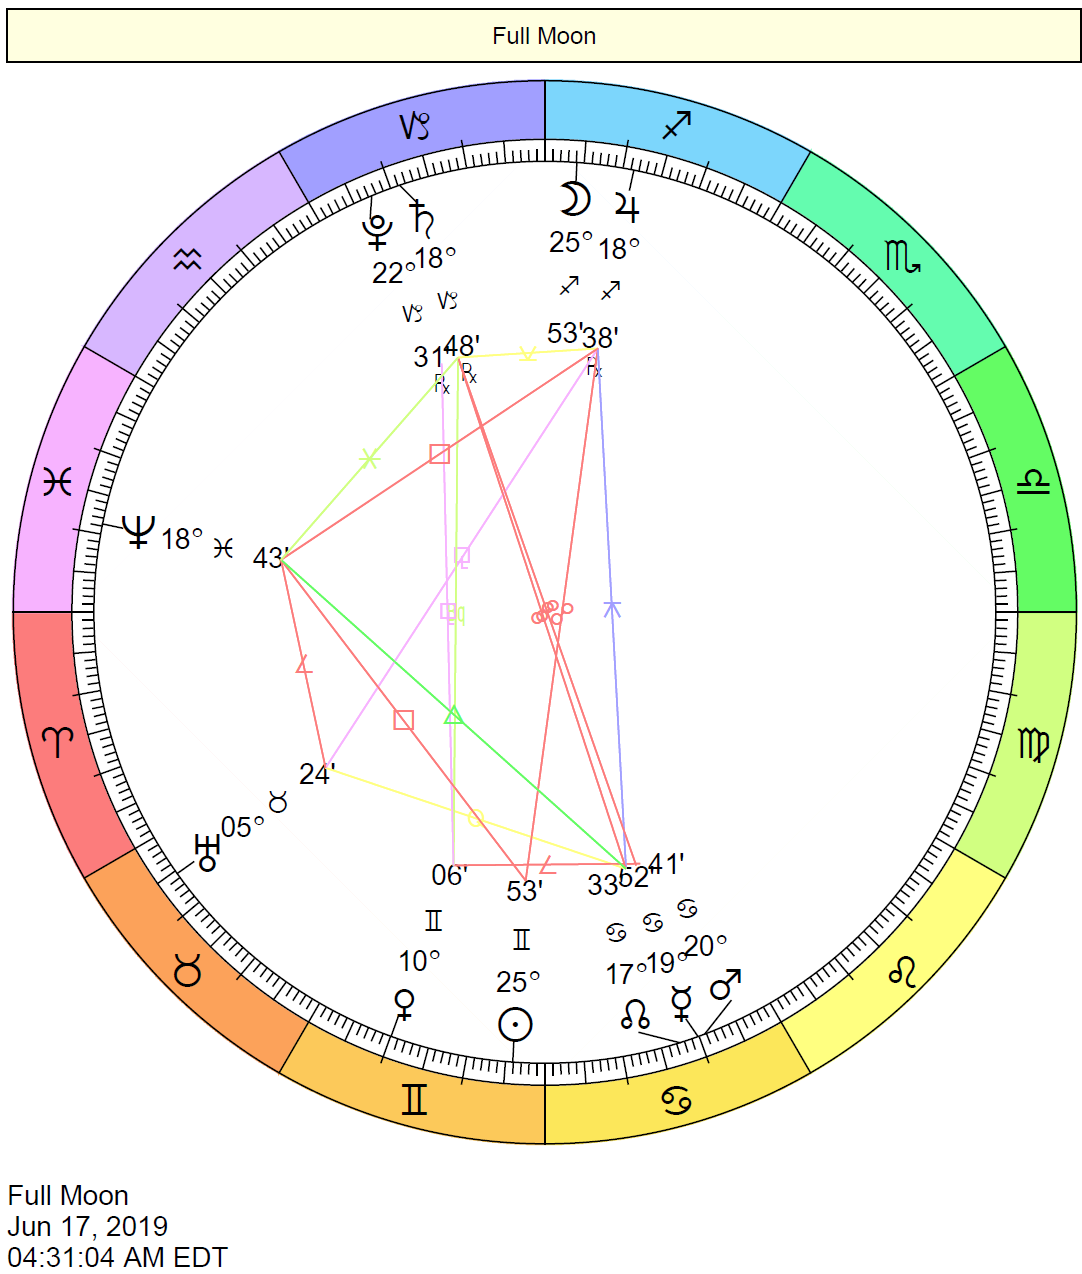 Full Moon in Sagittarius Chart: June 17, 2019